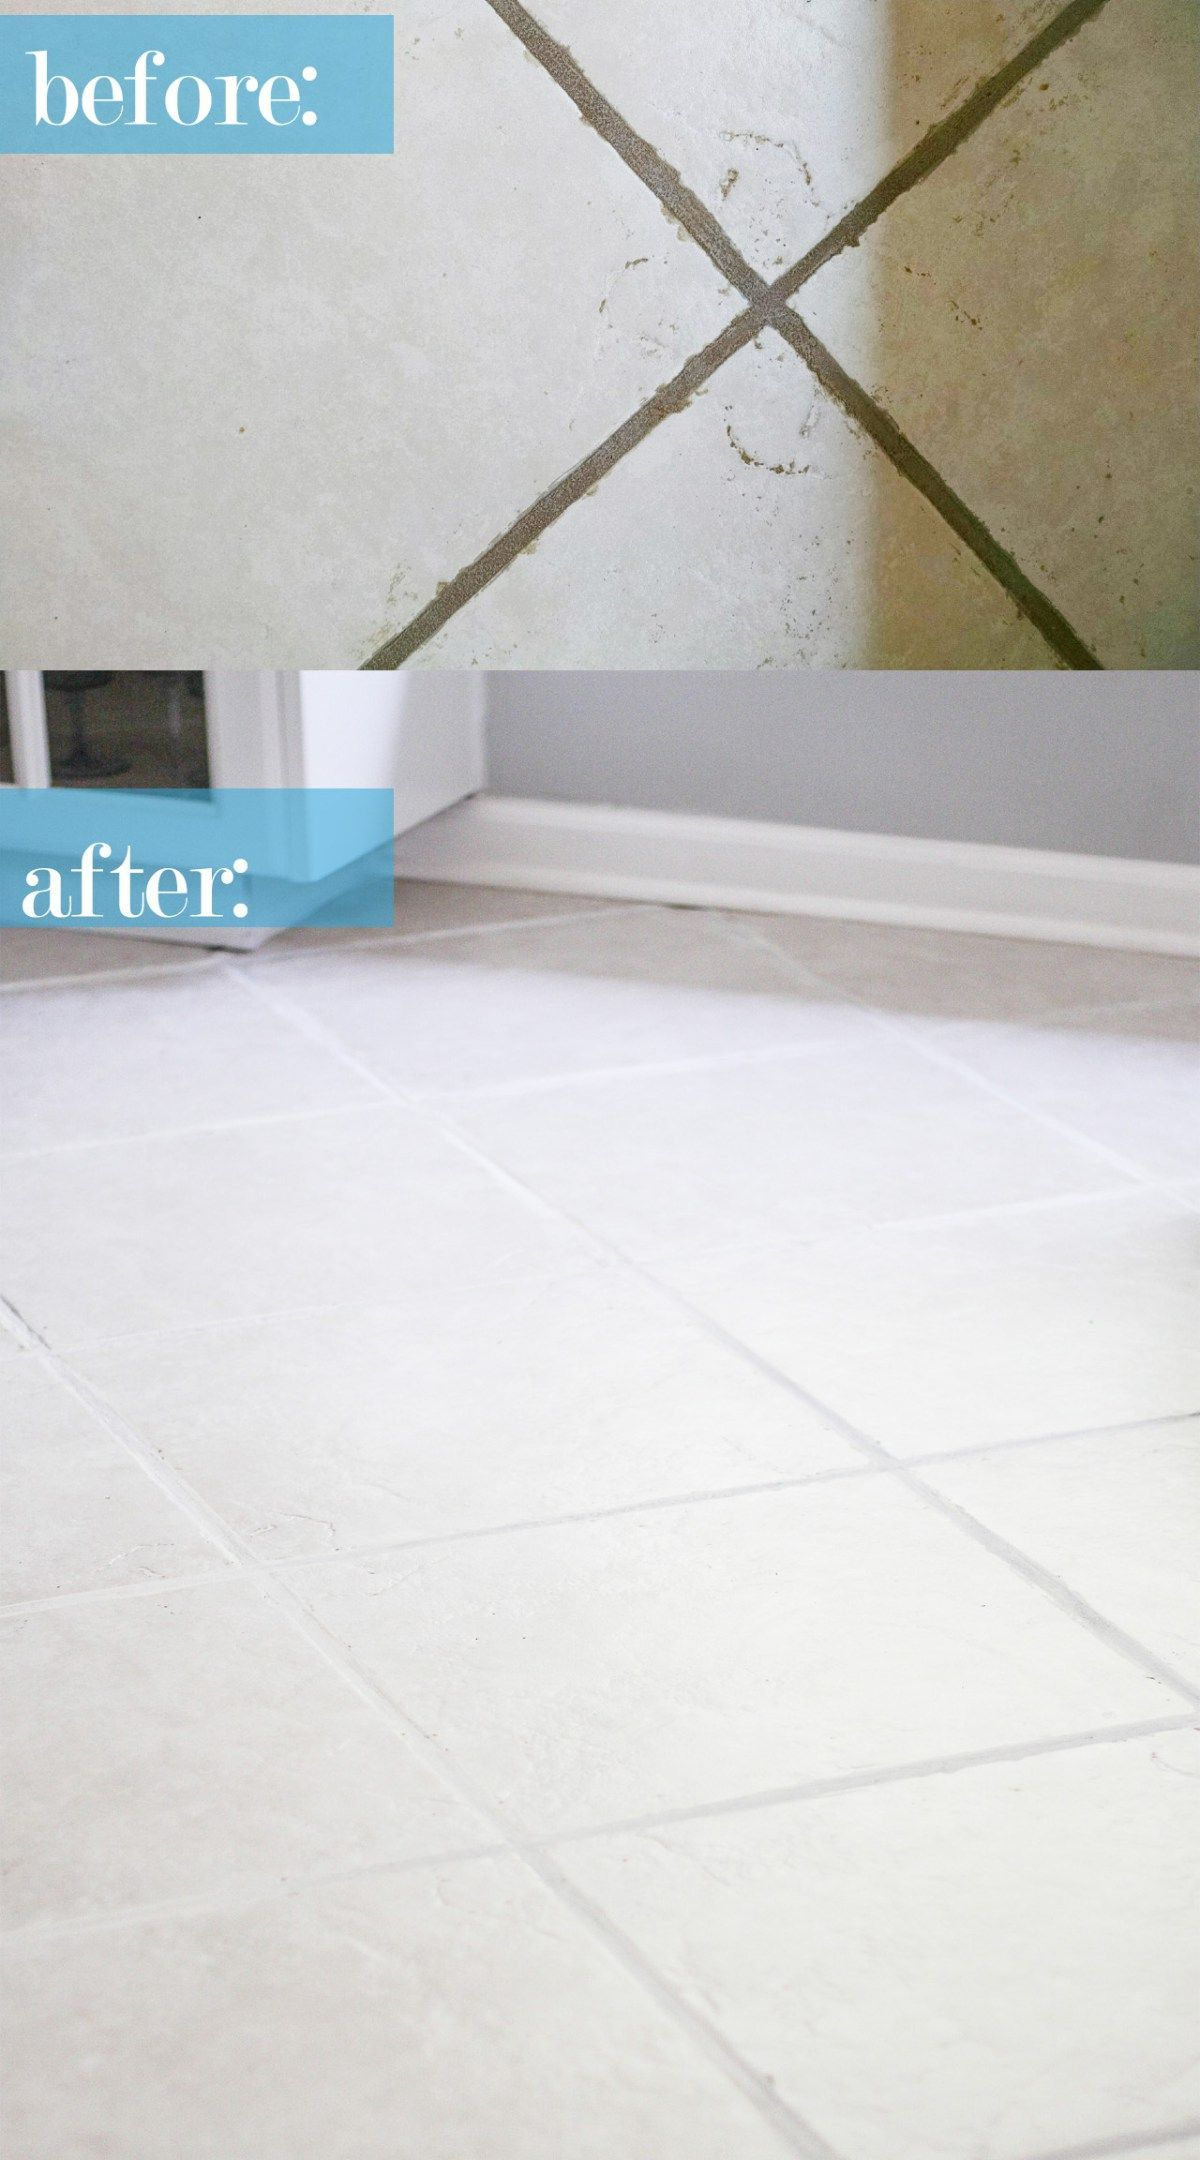 Heavy Duty Floor Cleaner The Easiest Way To Clean Filthy